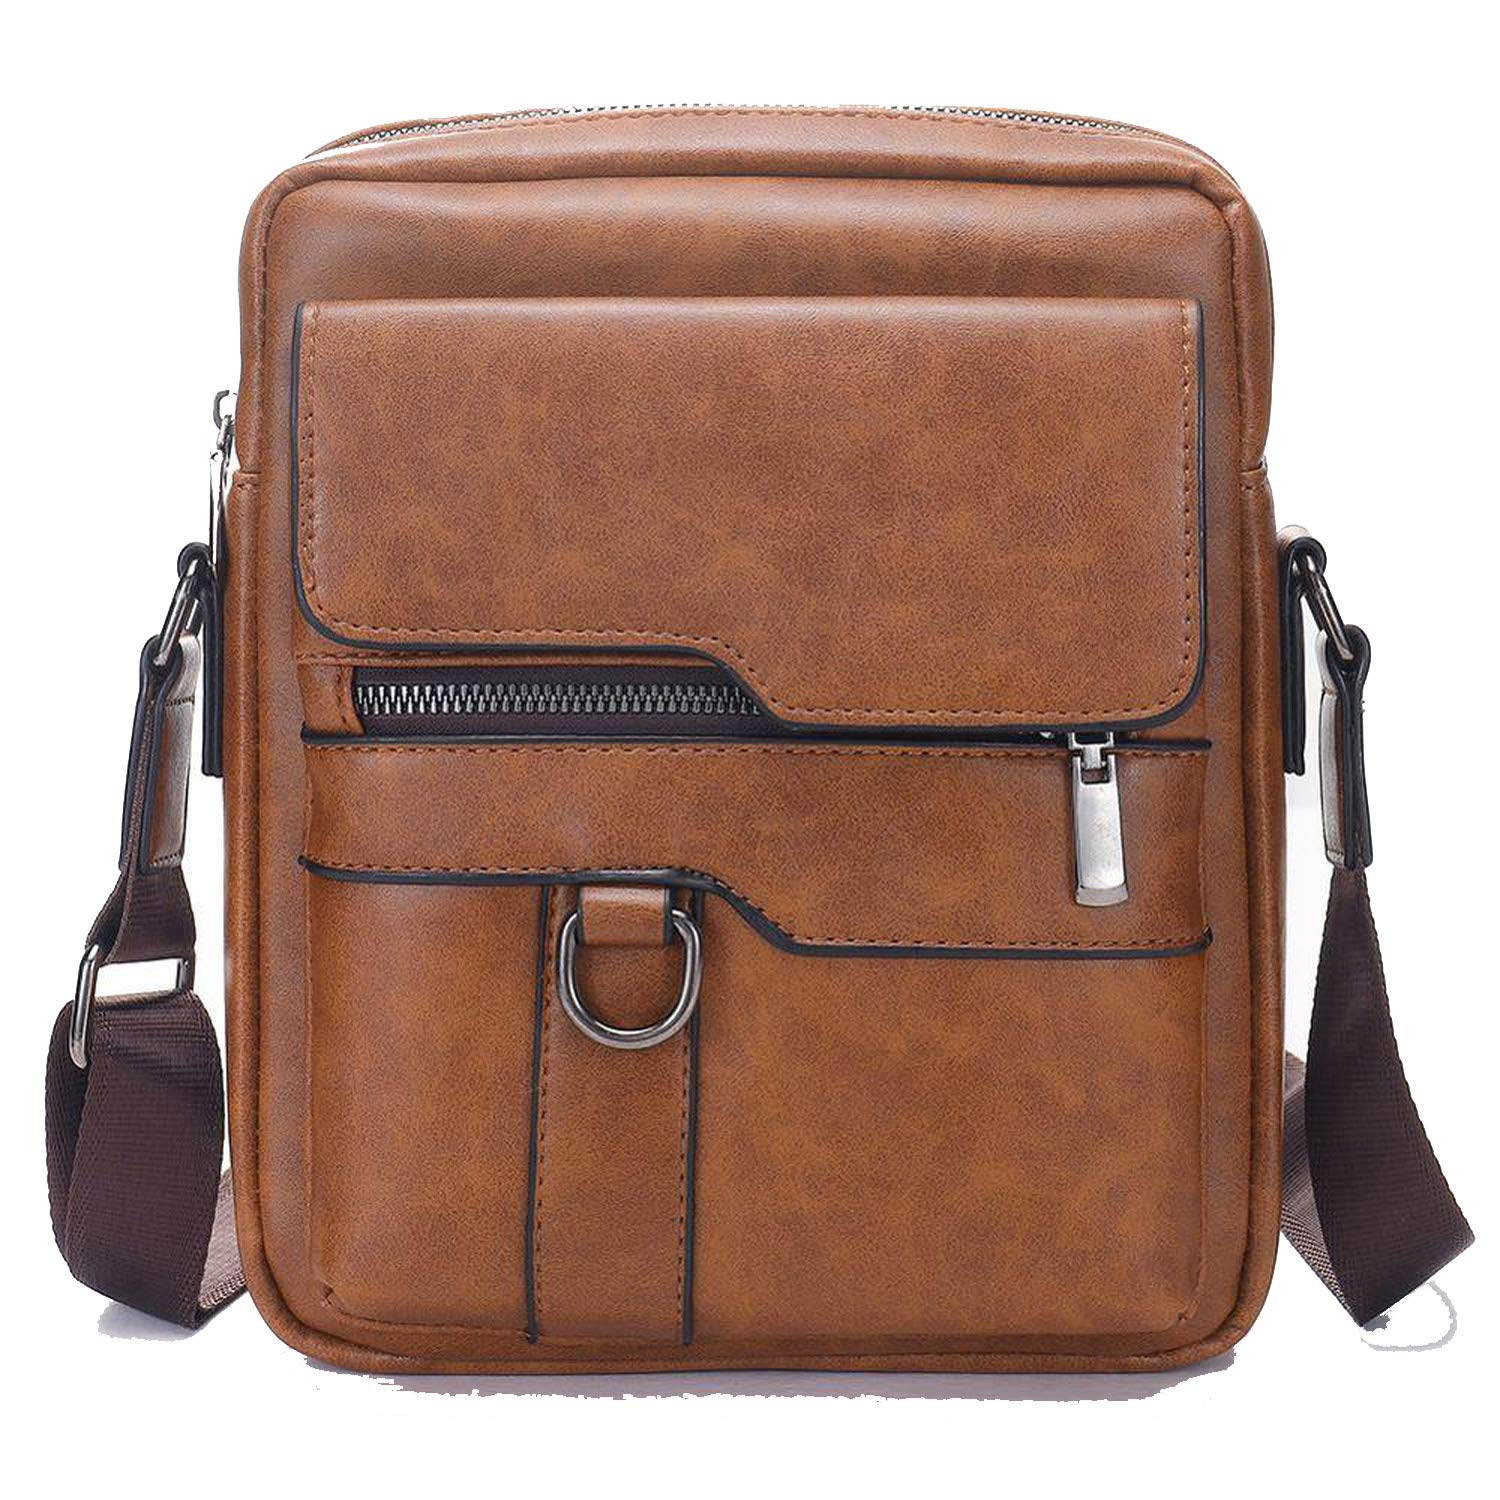 Men Shoulder Bag PU Leather Business Men Messenger Bags Large Man Crossbody Bag Waterproof Travel Bag